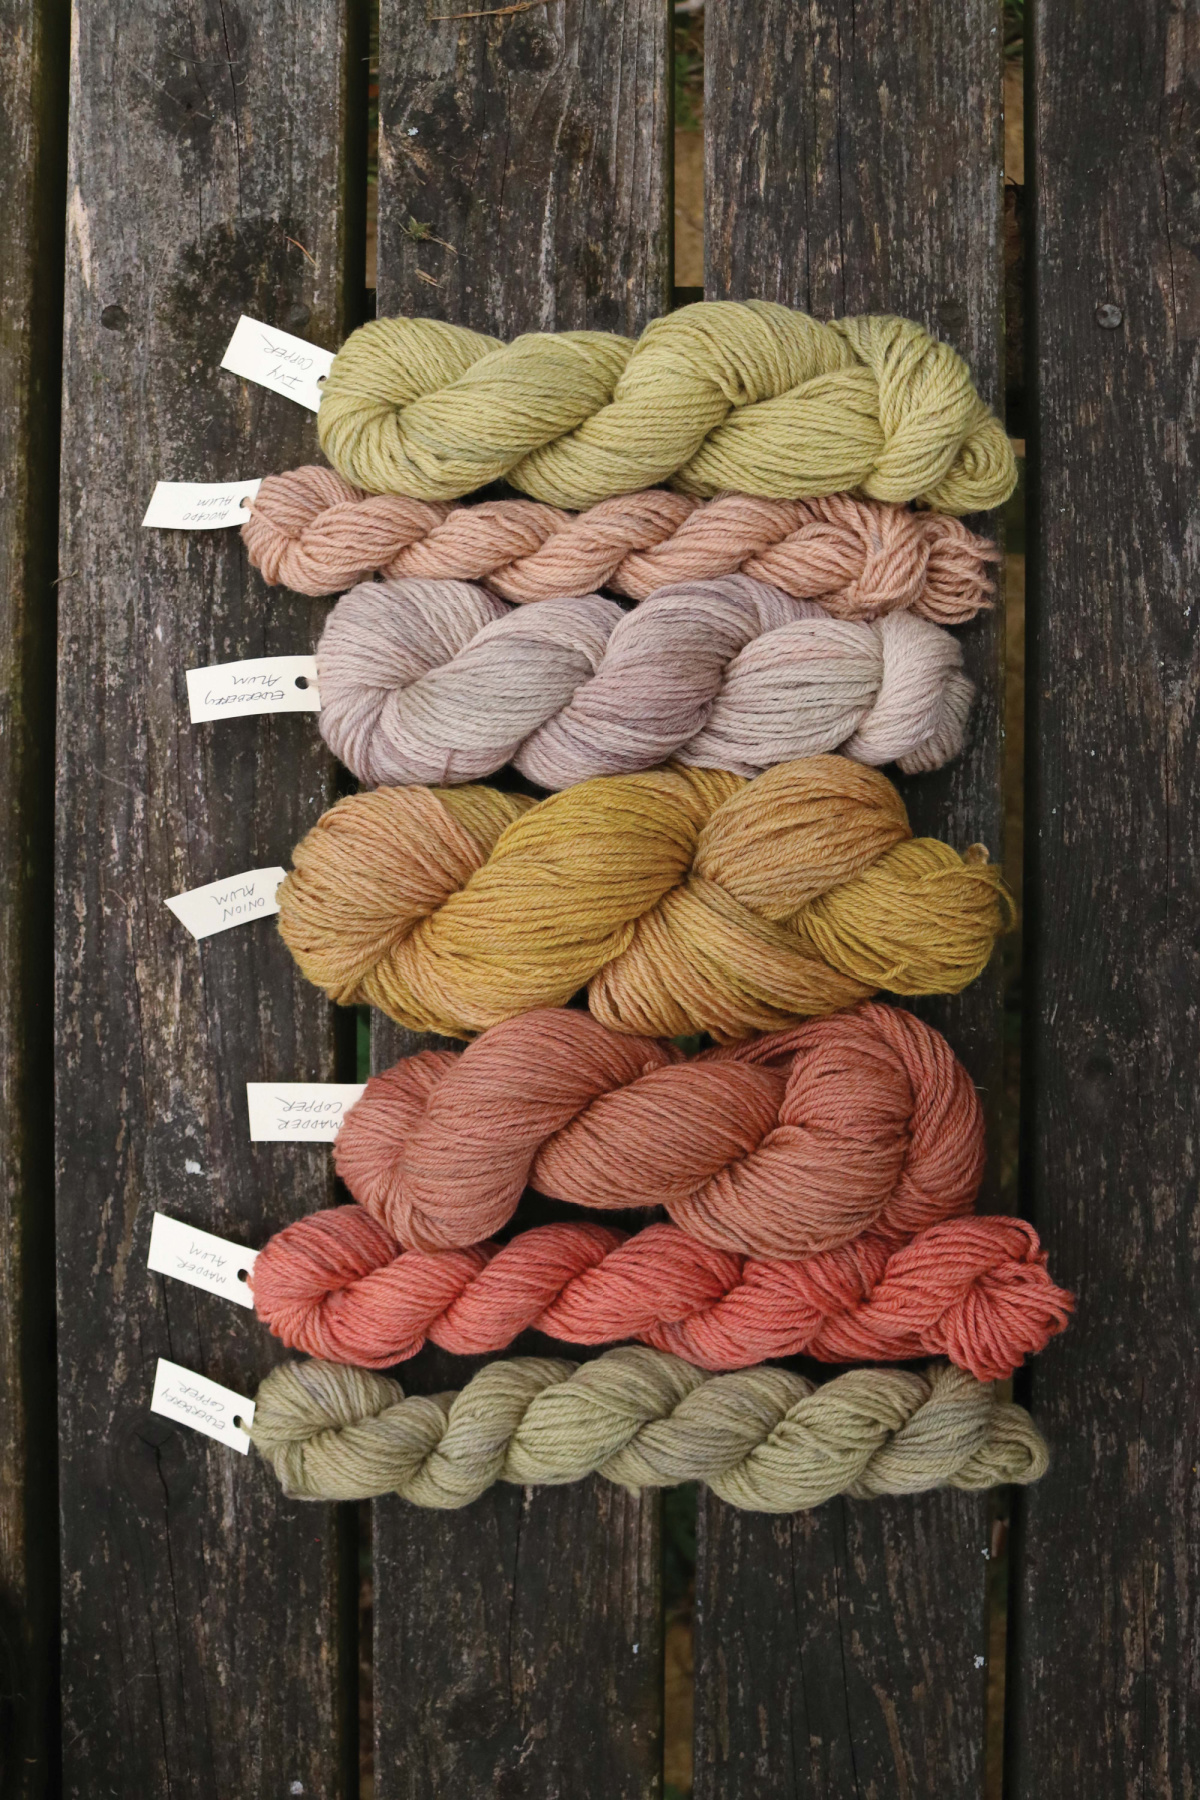 different colors of fabric using natural dyes